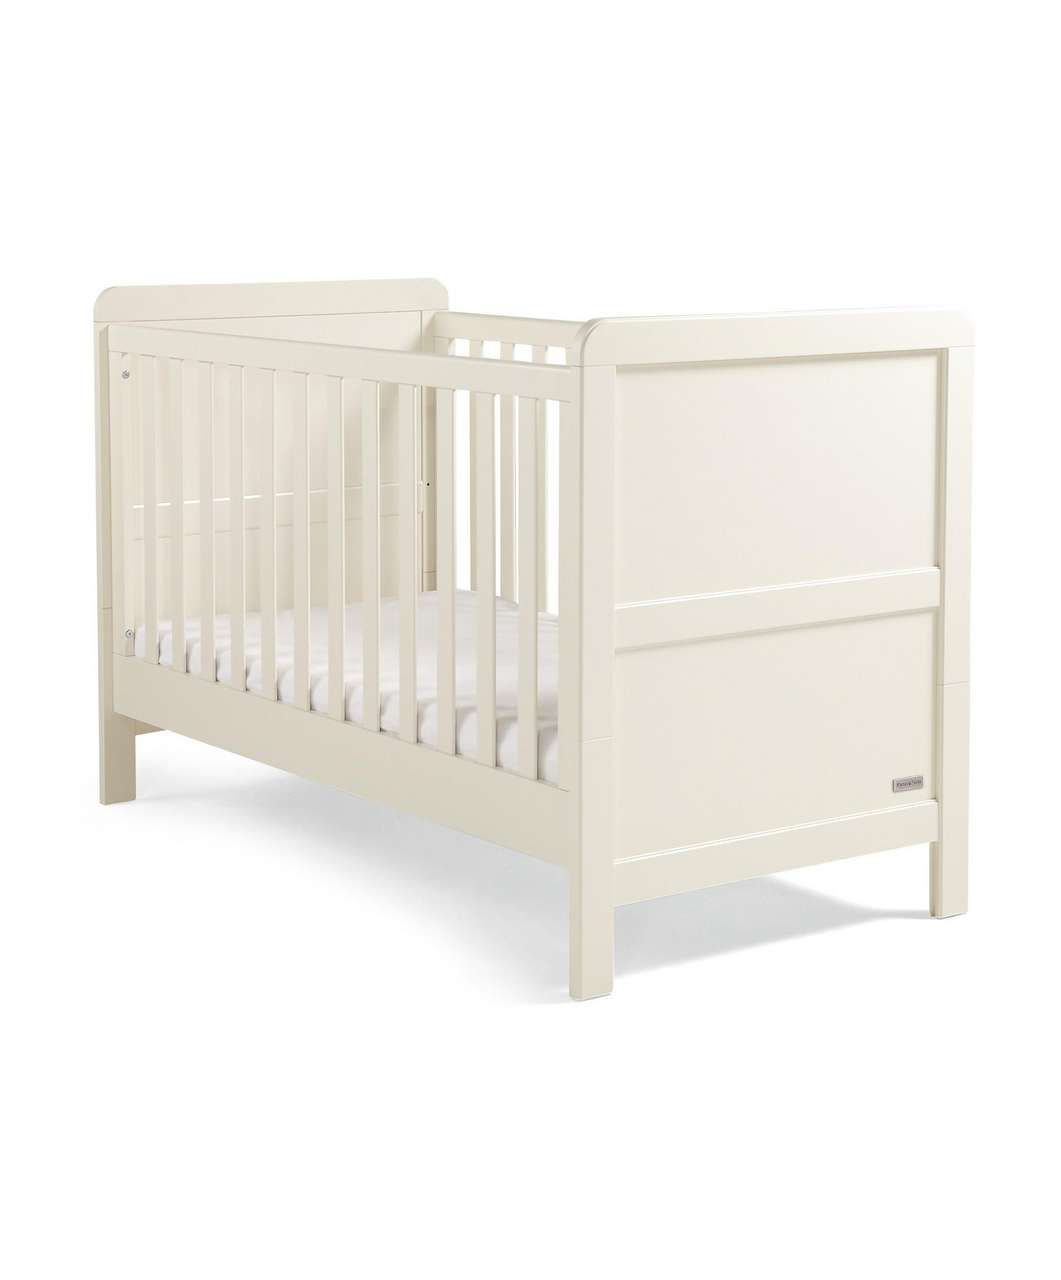 Sienna+ Cot/Toddler Bed - Cot Beds, Cots & Cribs - Mamas & Papas ...